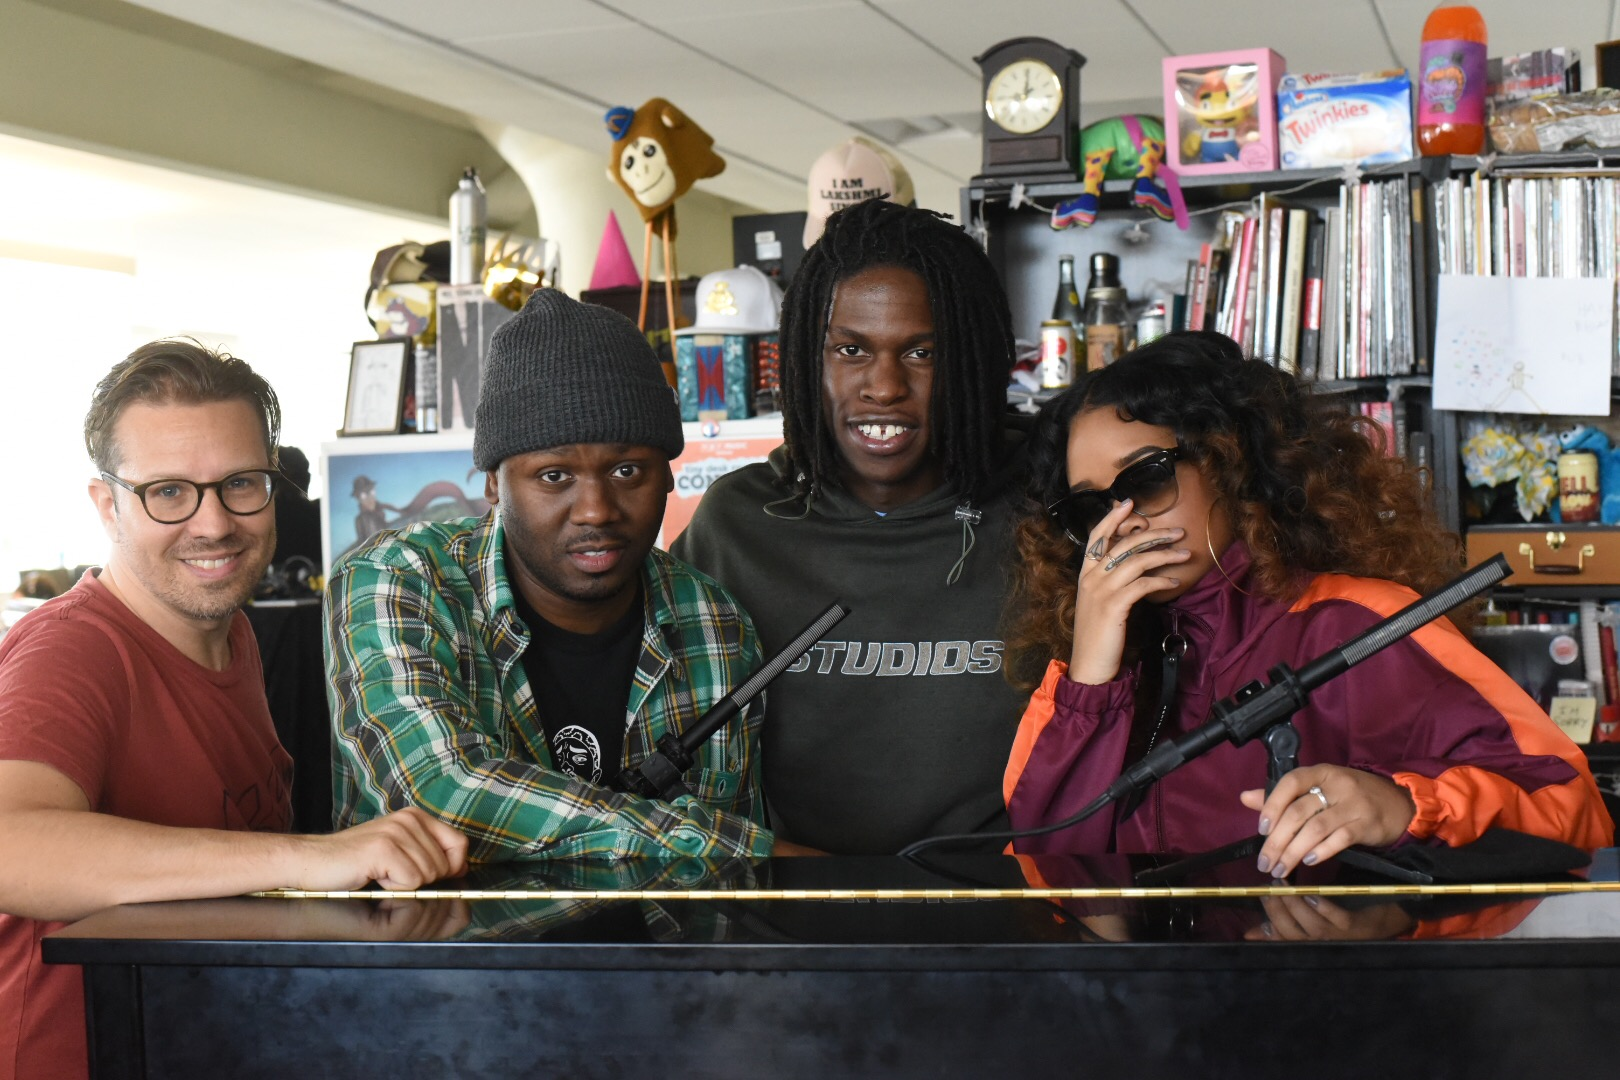 Josh Rogosin, Tiny Desk engineer, (left), Robert Carter, producer of Tiny Desk, Daniel Caesar, Canadian singer-songwriter, and H.E.R., who has won multiple awards including two Grammys (right). (Photo special to JSU)